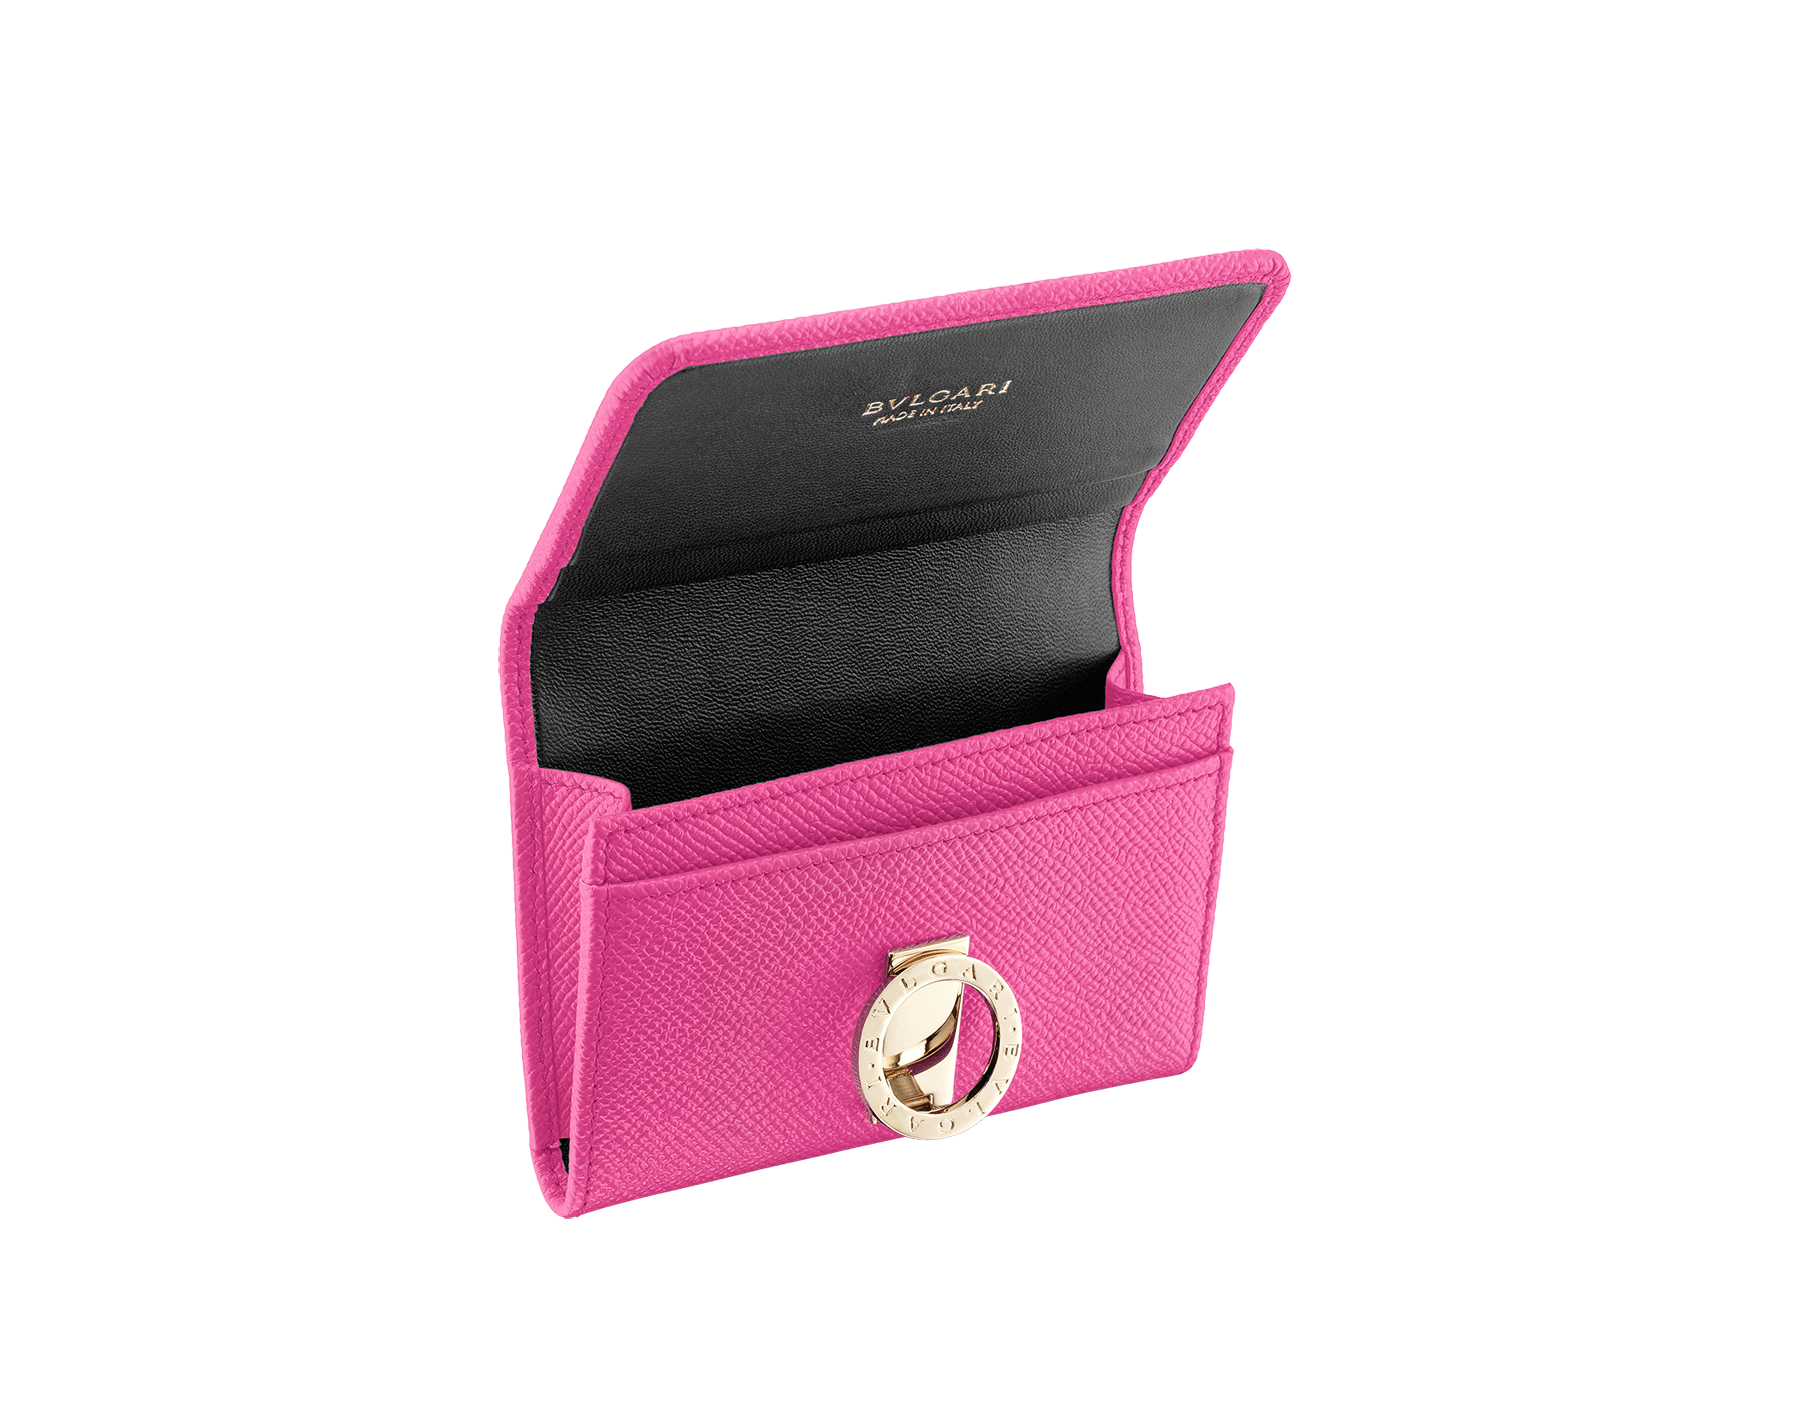 BVLGARI BVLGARI business card holder in flash amethyst grain calf leather and black nappa leather. Iconic logo closure clip in light gold plated brass. 289038 image 2